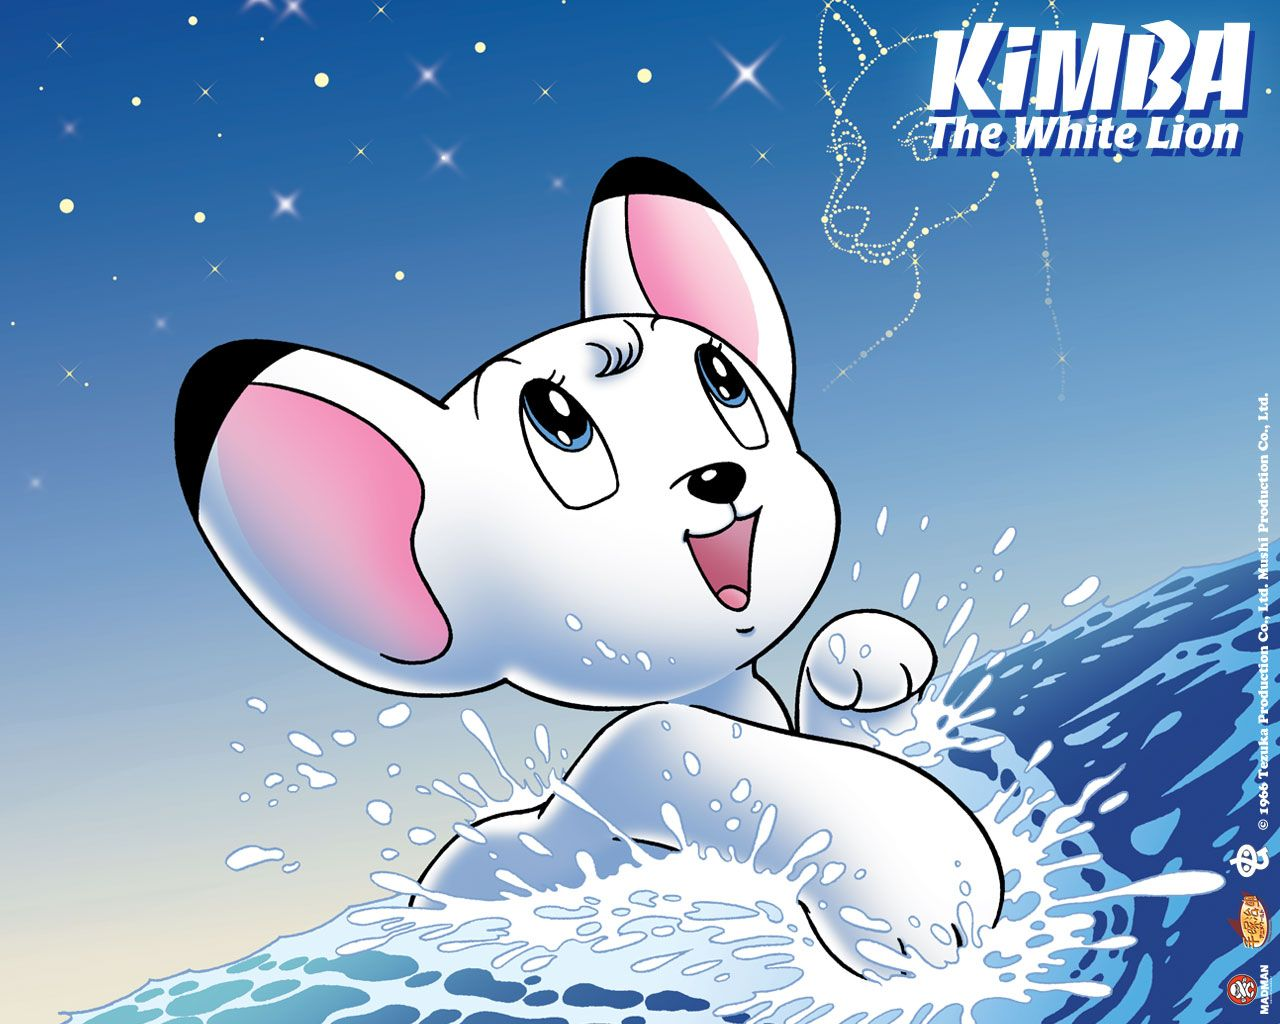 Image detail for Kimba the White Lion Wallpapers for free